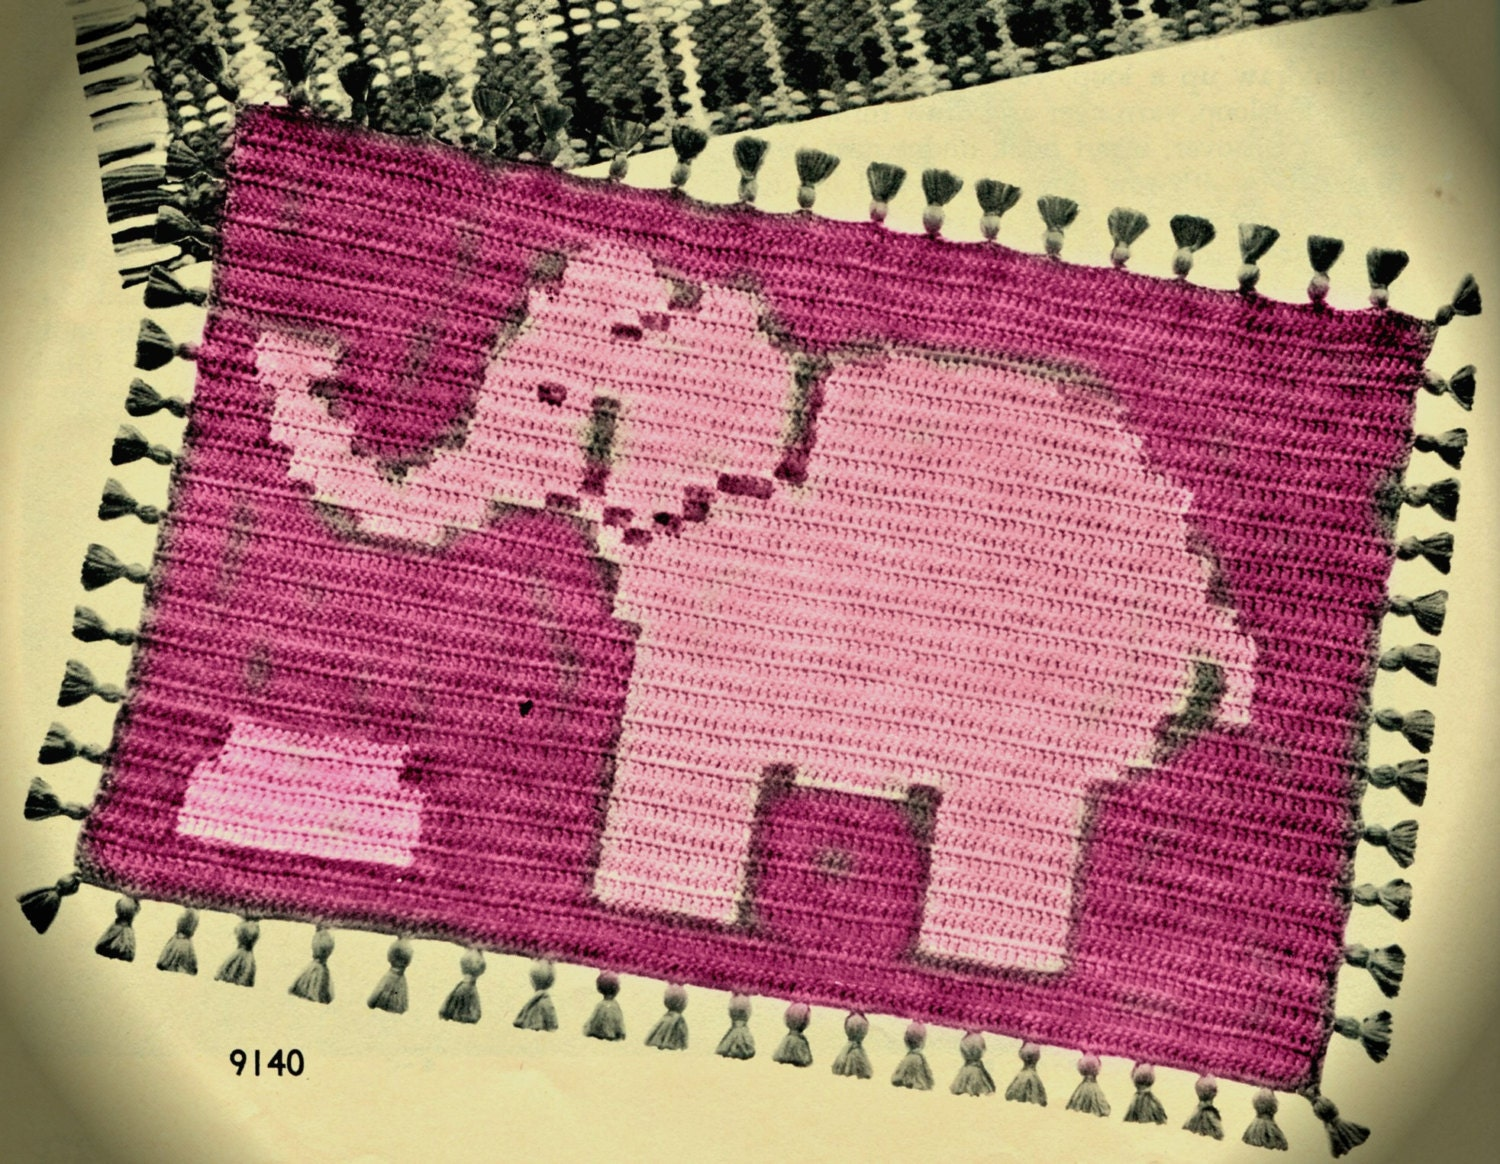 Crochet Elephant Rug : Pink Elephant Crochet Rug Pattern by PearlShoreCat on Etsy